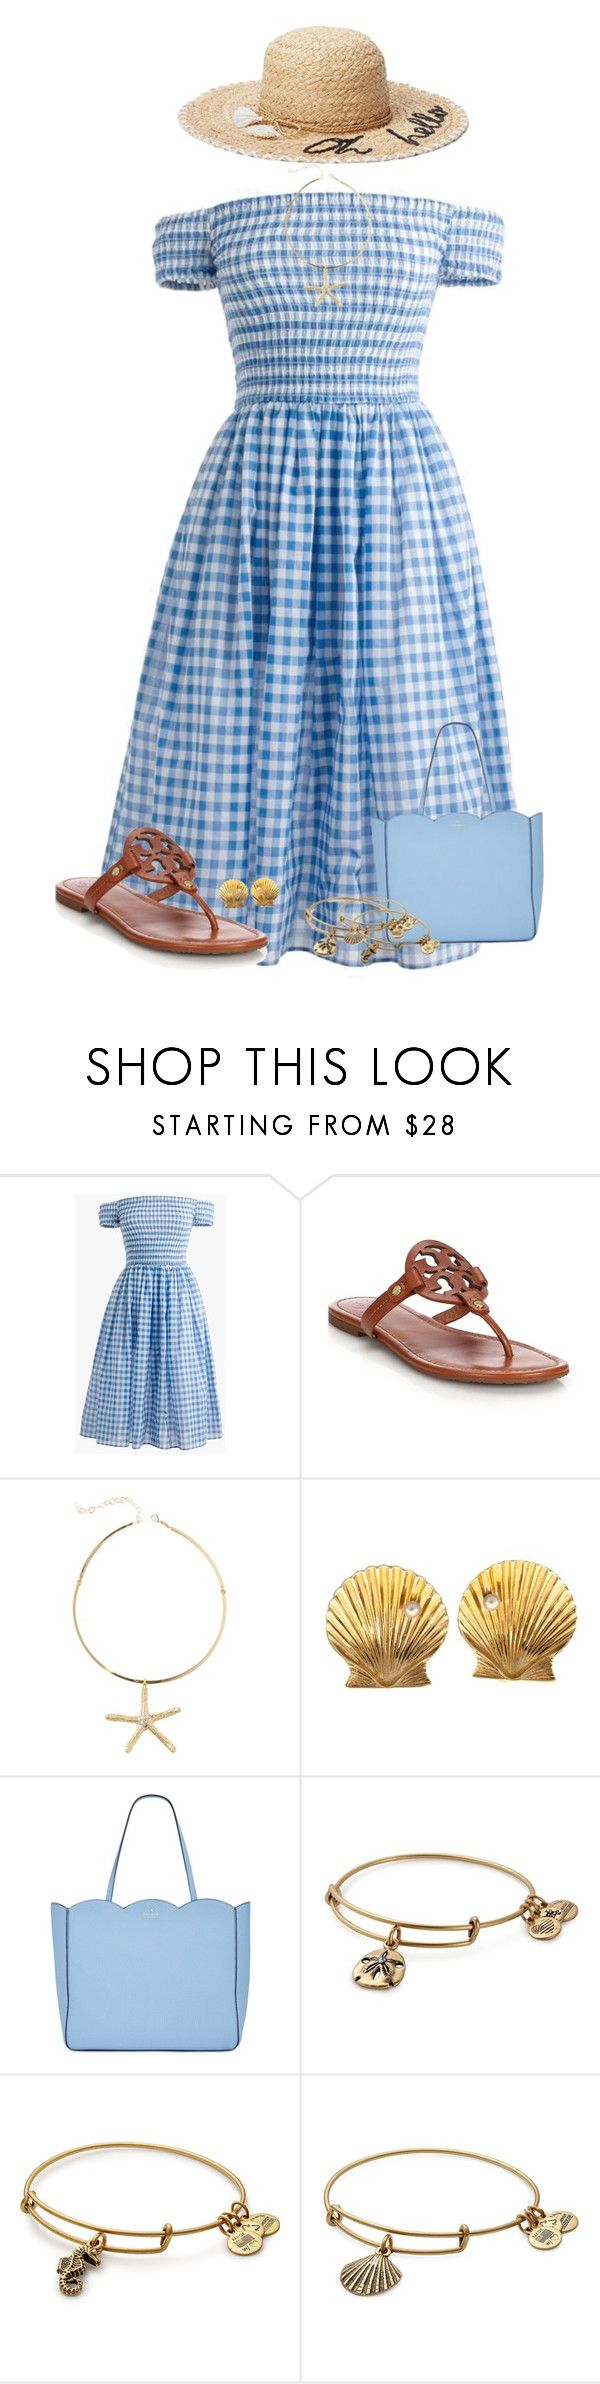 """""""Isaiah 5:35"""" by southerngirlslovepearls ❤ liked on Polyvore featuring J.Crew, Tory Burch, Lilly Pulitzer, Tiffany & Co., Kate Spade and Alex and Ani"""